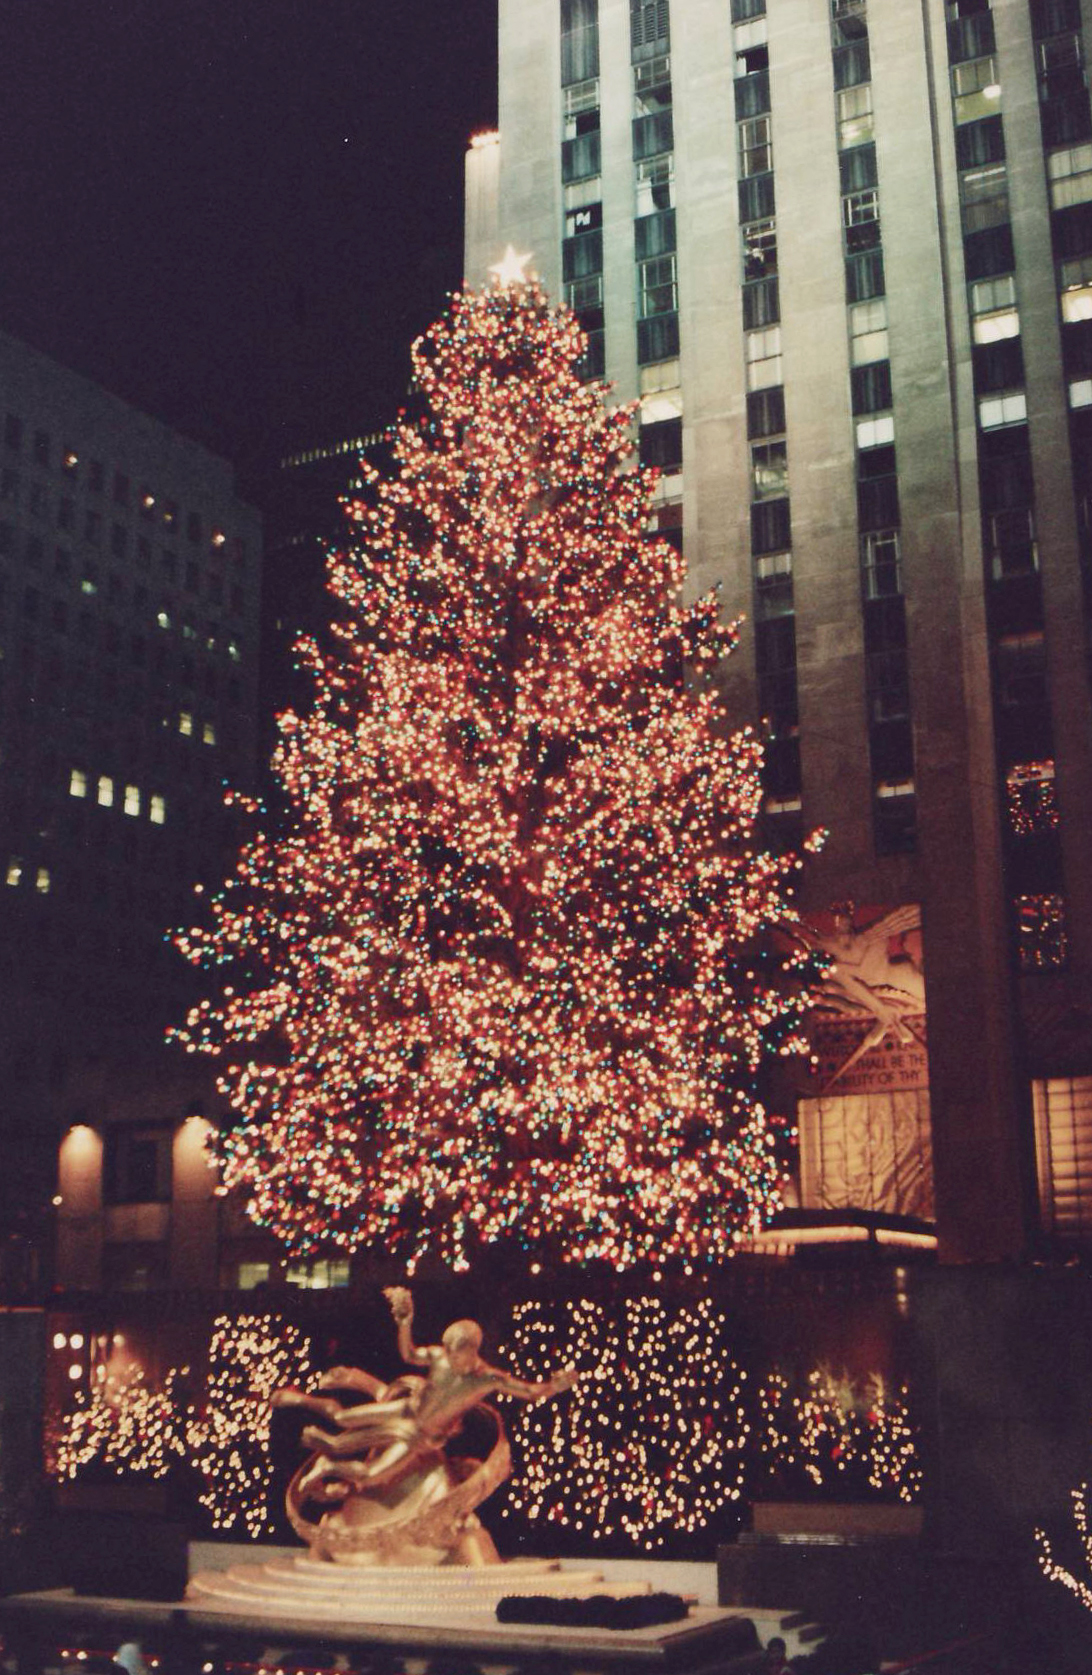 rockefeller center christmas tree wikipedia rockefeller center christmas tree